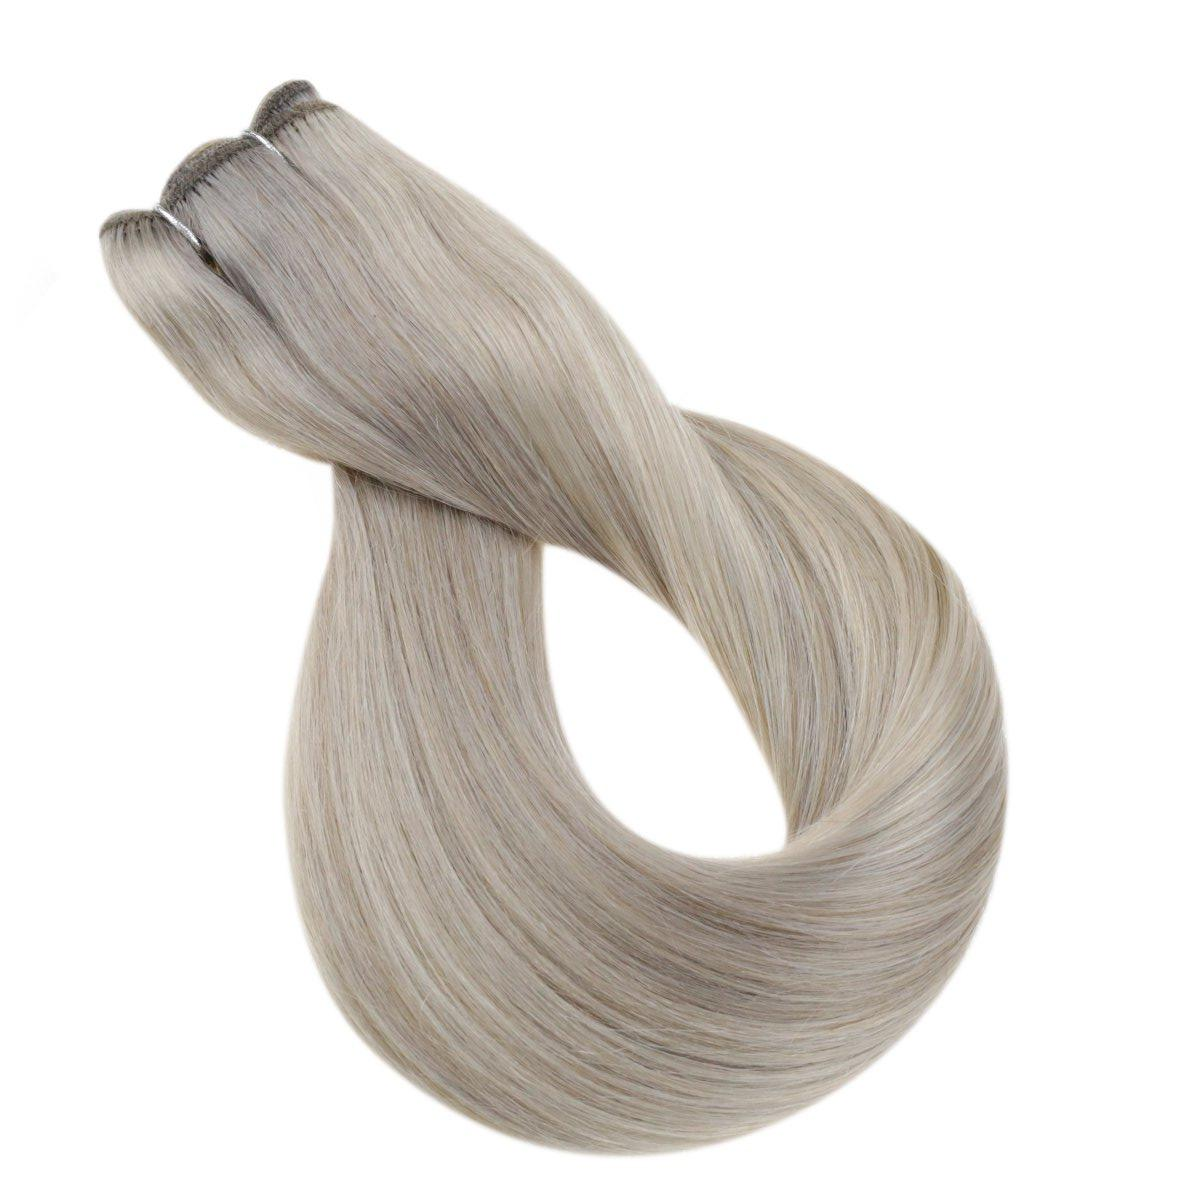 Sew In Weft Human Hair Extensions Remy Human Hair Bundles Highlight Blonde Machine Hair Weft (#P19A/60)